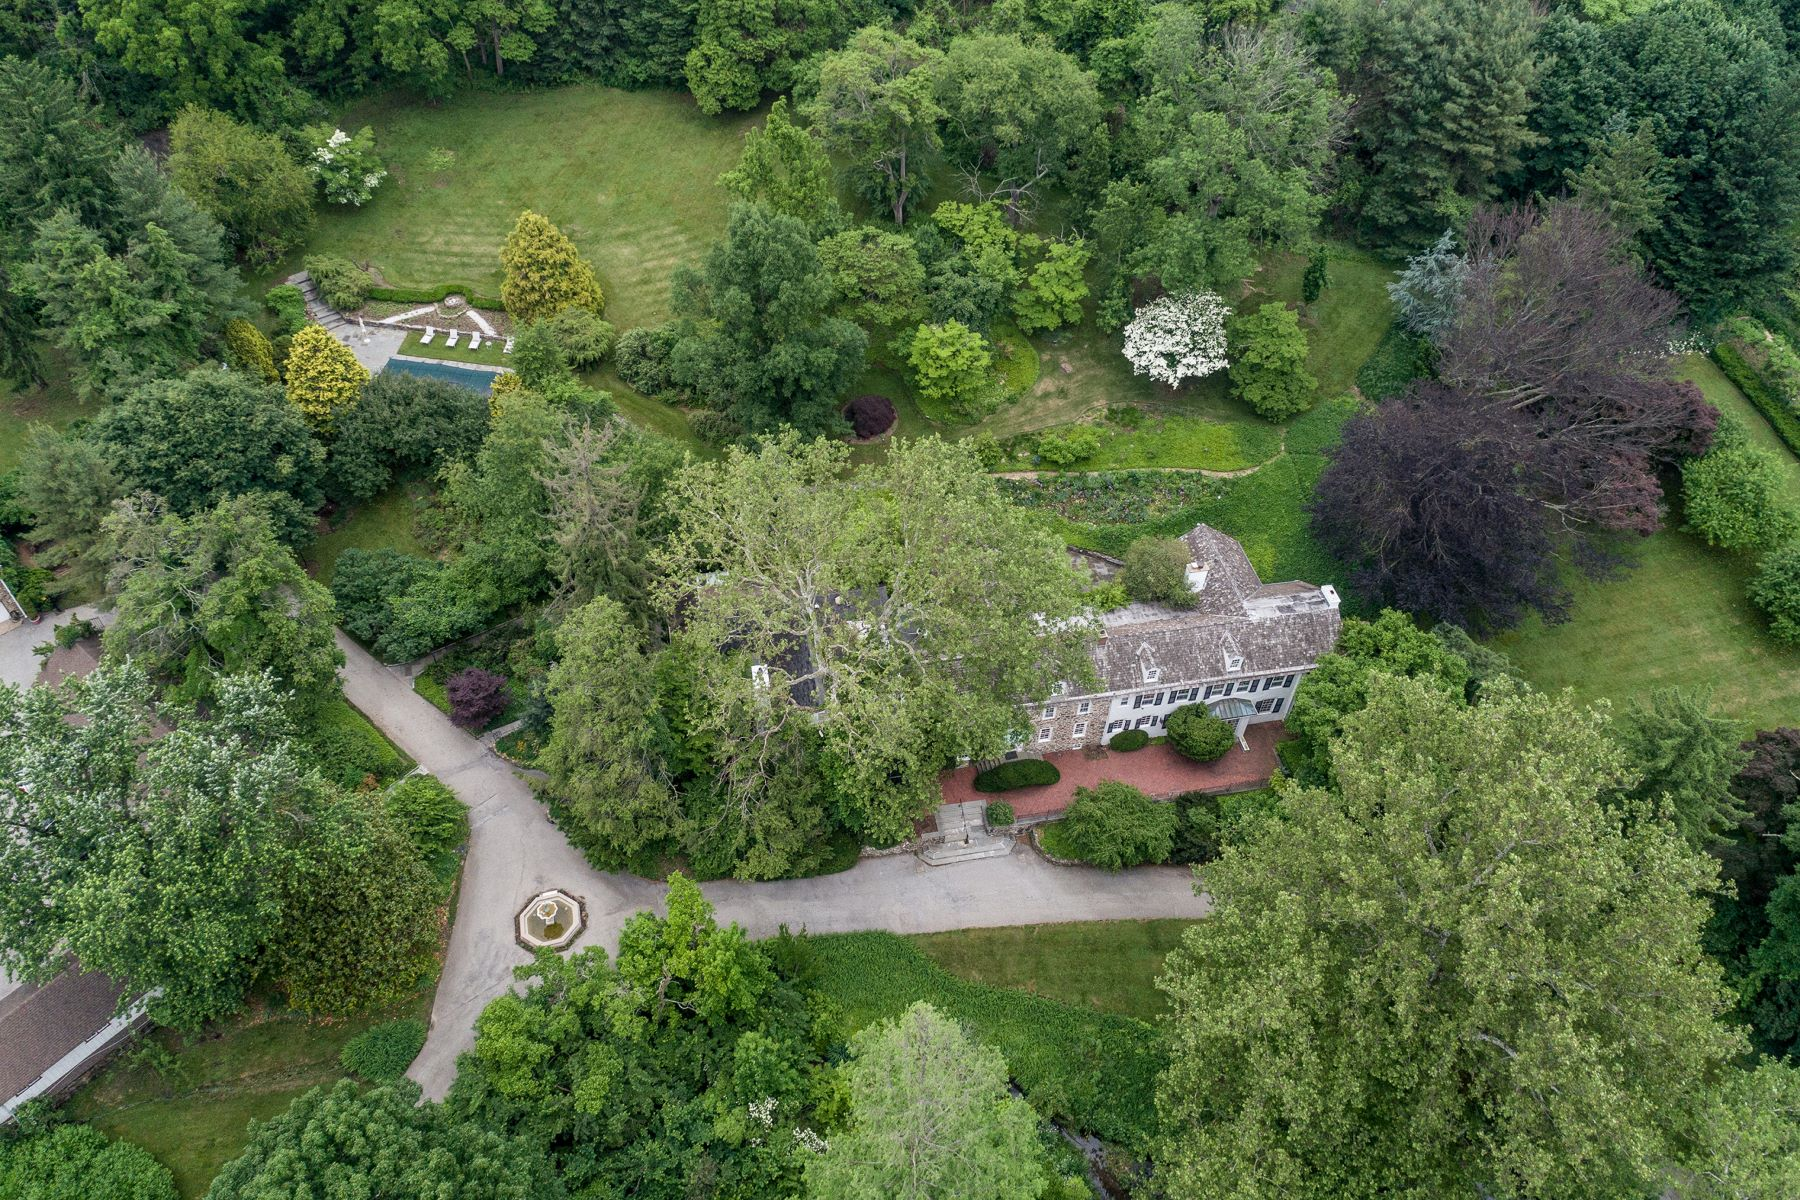 Single Family Home for Sale at 1425 Mount Pleasant Rd 1425 MOUNT PLEASANT RD Villanova, Pennsylvania 19085 United States